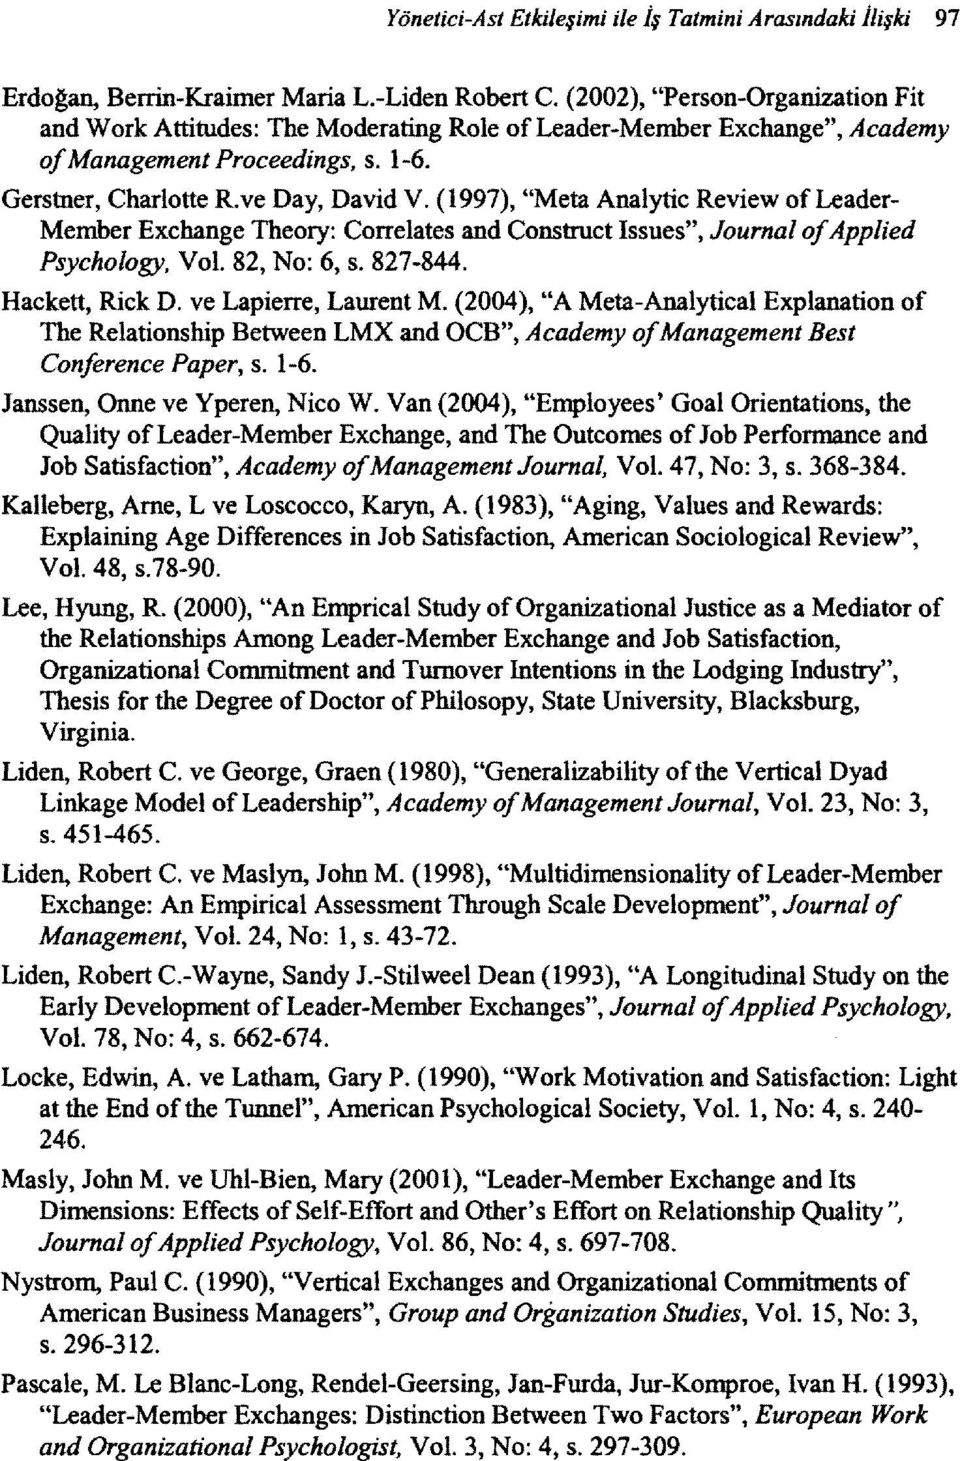 "(1997), ""Meta Analytic Review of Leader Member Exchange Theory: Correlates and Construct Issues"", Journal ofapplied Psychology, Vol. 82, No: 6, s. 827-844. Hackett, Rick D. ve Lapierre, Laurent M."